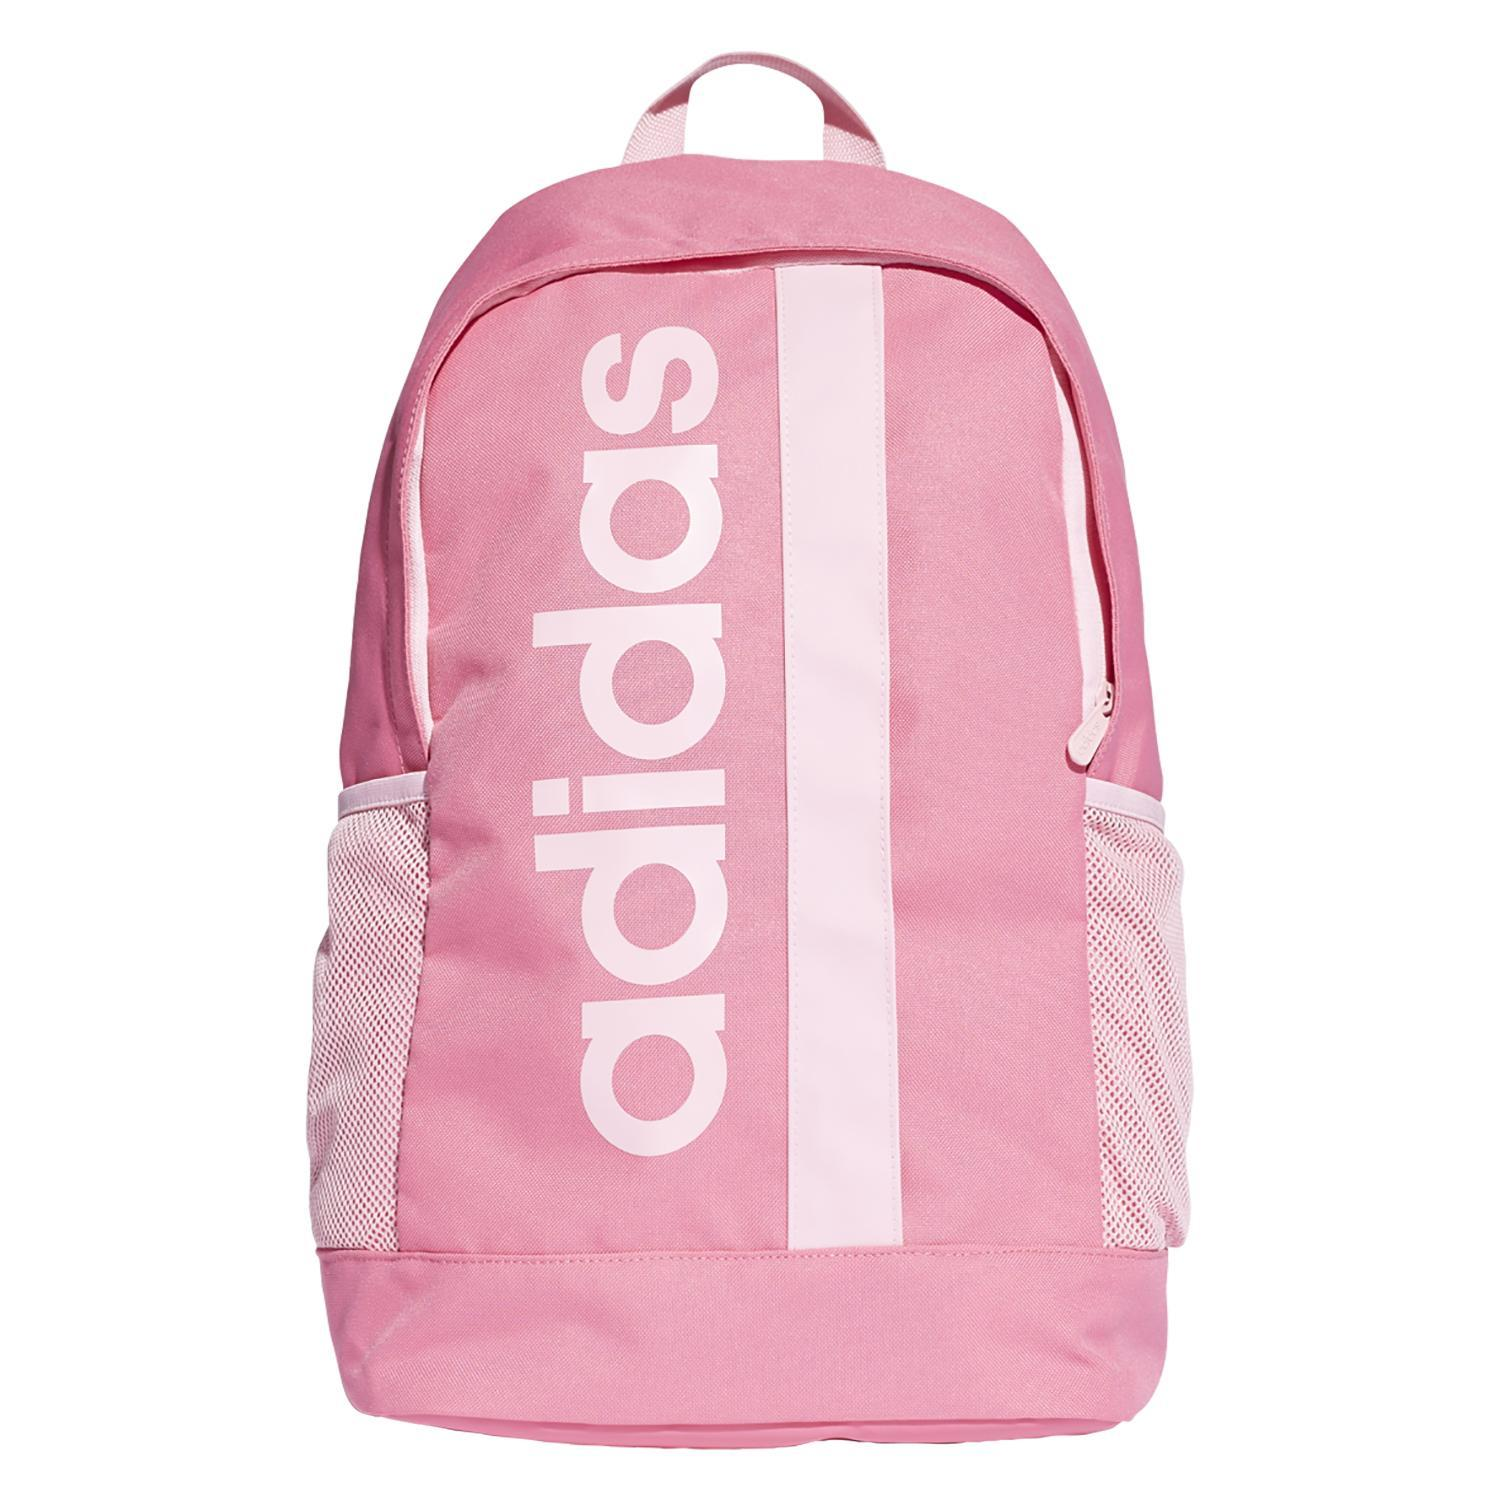 Linear Core Backpack - Semi Solar Pink/True Pink/True Pink SP-Accessories-Bags Adidas